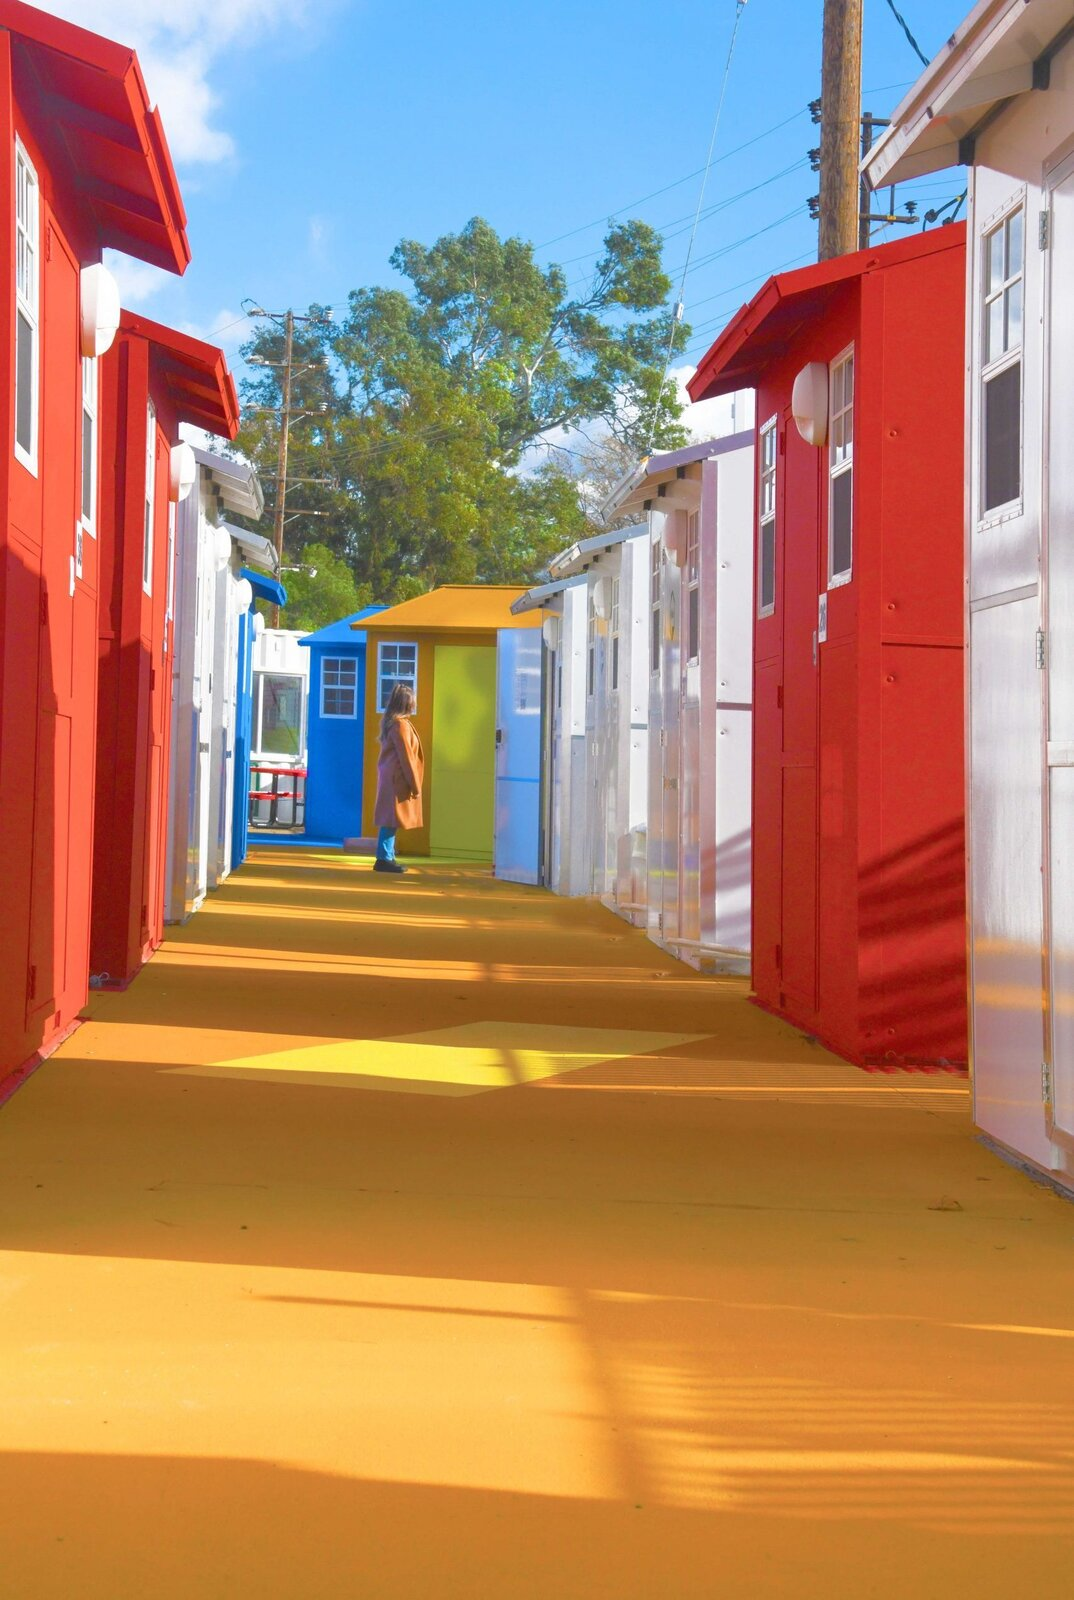 Exterior, Gable RoofLine, Tiny Home Building Type, and Prefab Building Type The tiny house community also has ADA units to accommodate people with wheelchairs.   Photo 8 of 12 in L.A. Is Taking On Homelessness With a New, Brightly Colored Tiny Home Village